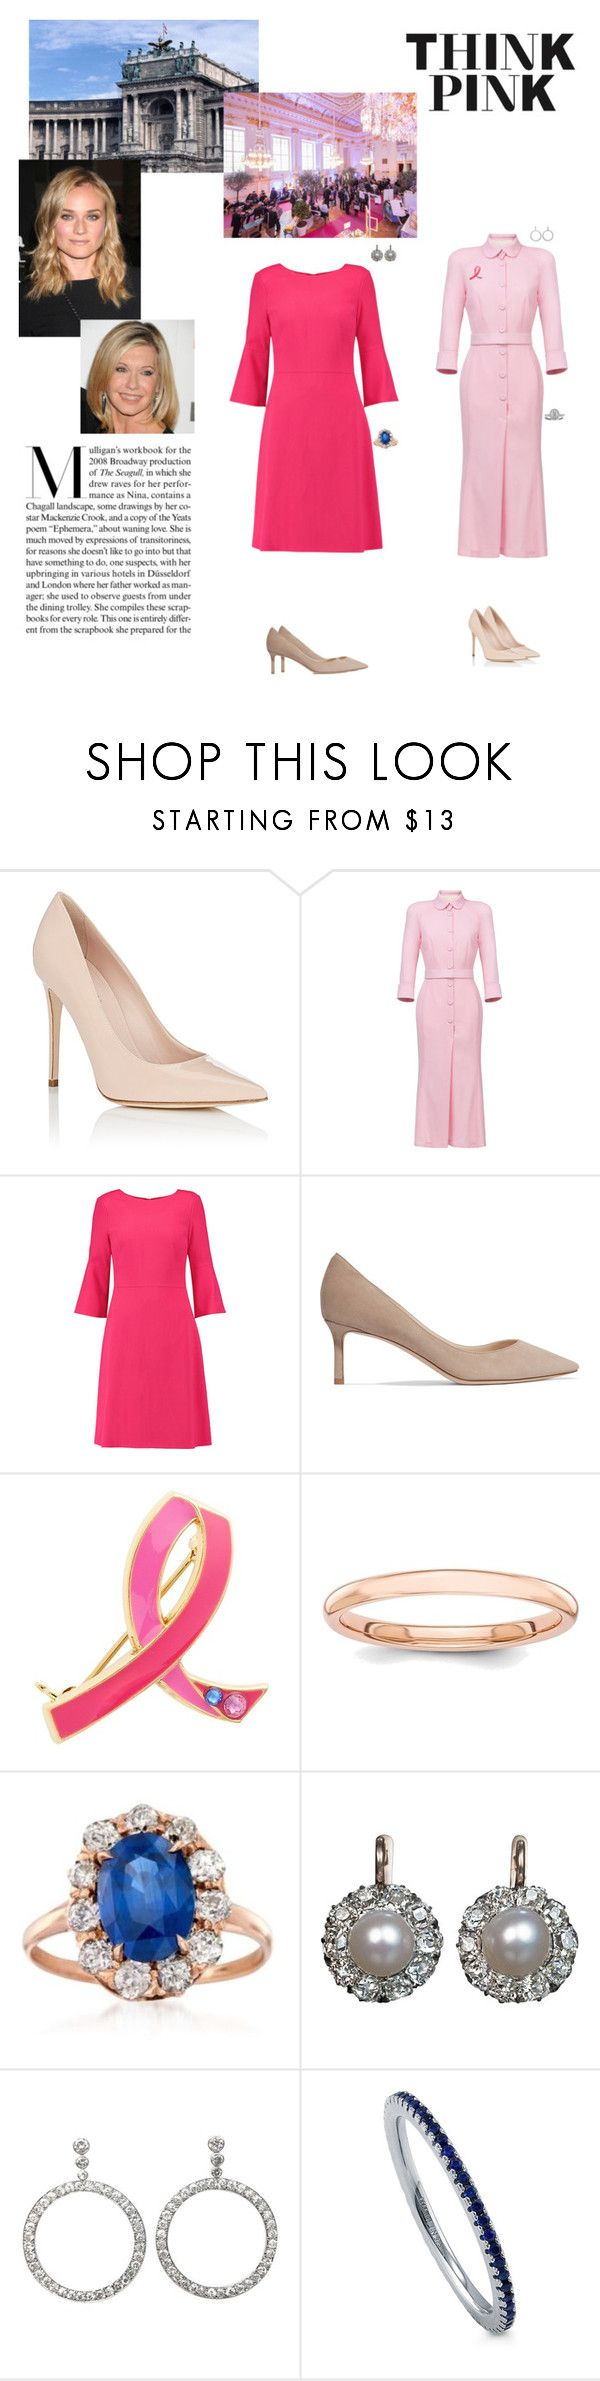 """""""(E&H) HI&RAM The Empress & HI&RH Archduchess Helena host a Reception in honour of Breast Cancer Awareness Month at the Hofburg 06-10-2017"""" by vanessa-von-osterreich ❤ liked on Polyvore featuring Barneys New York, Ulyana Sergeenko, Goat, Jimmy Choo, Estée Lauder, Ross-Simons, Boucheron, BERRICLE and Mark Broumand"""